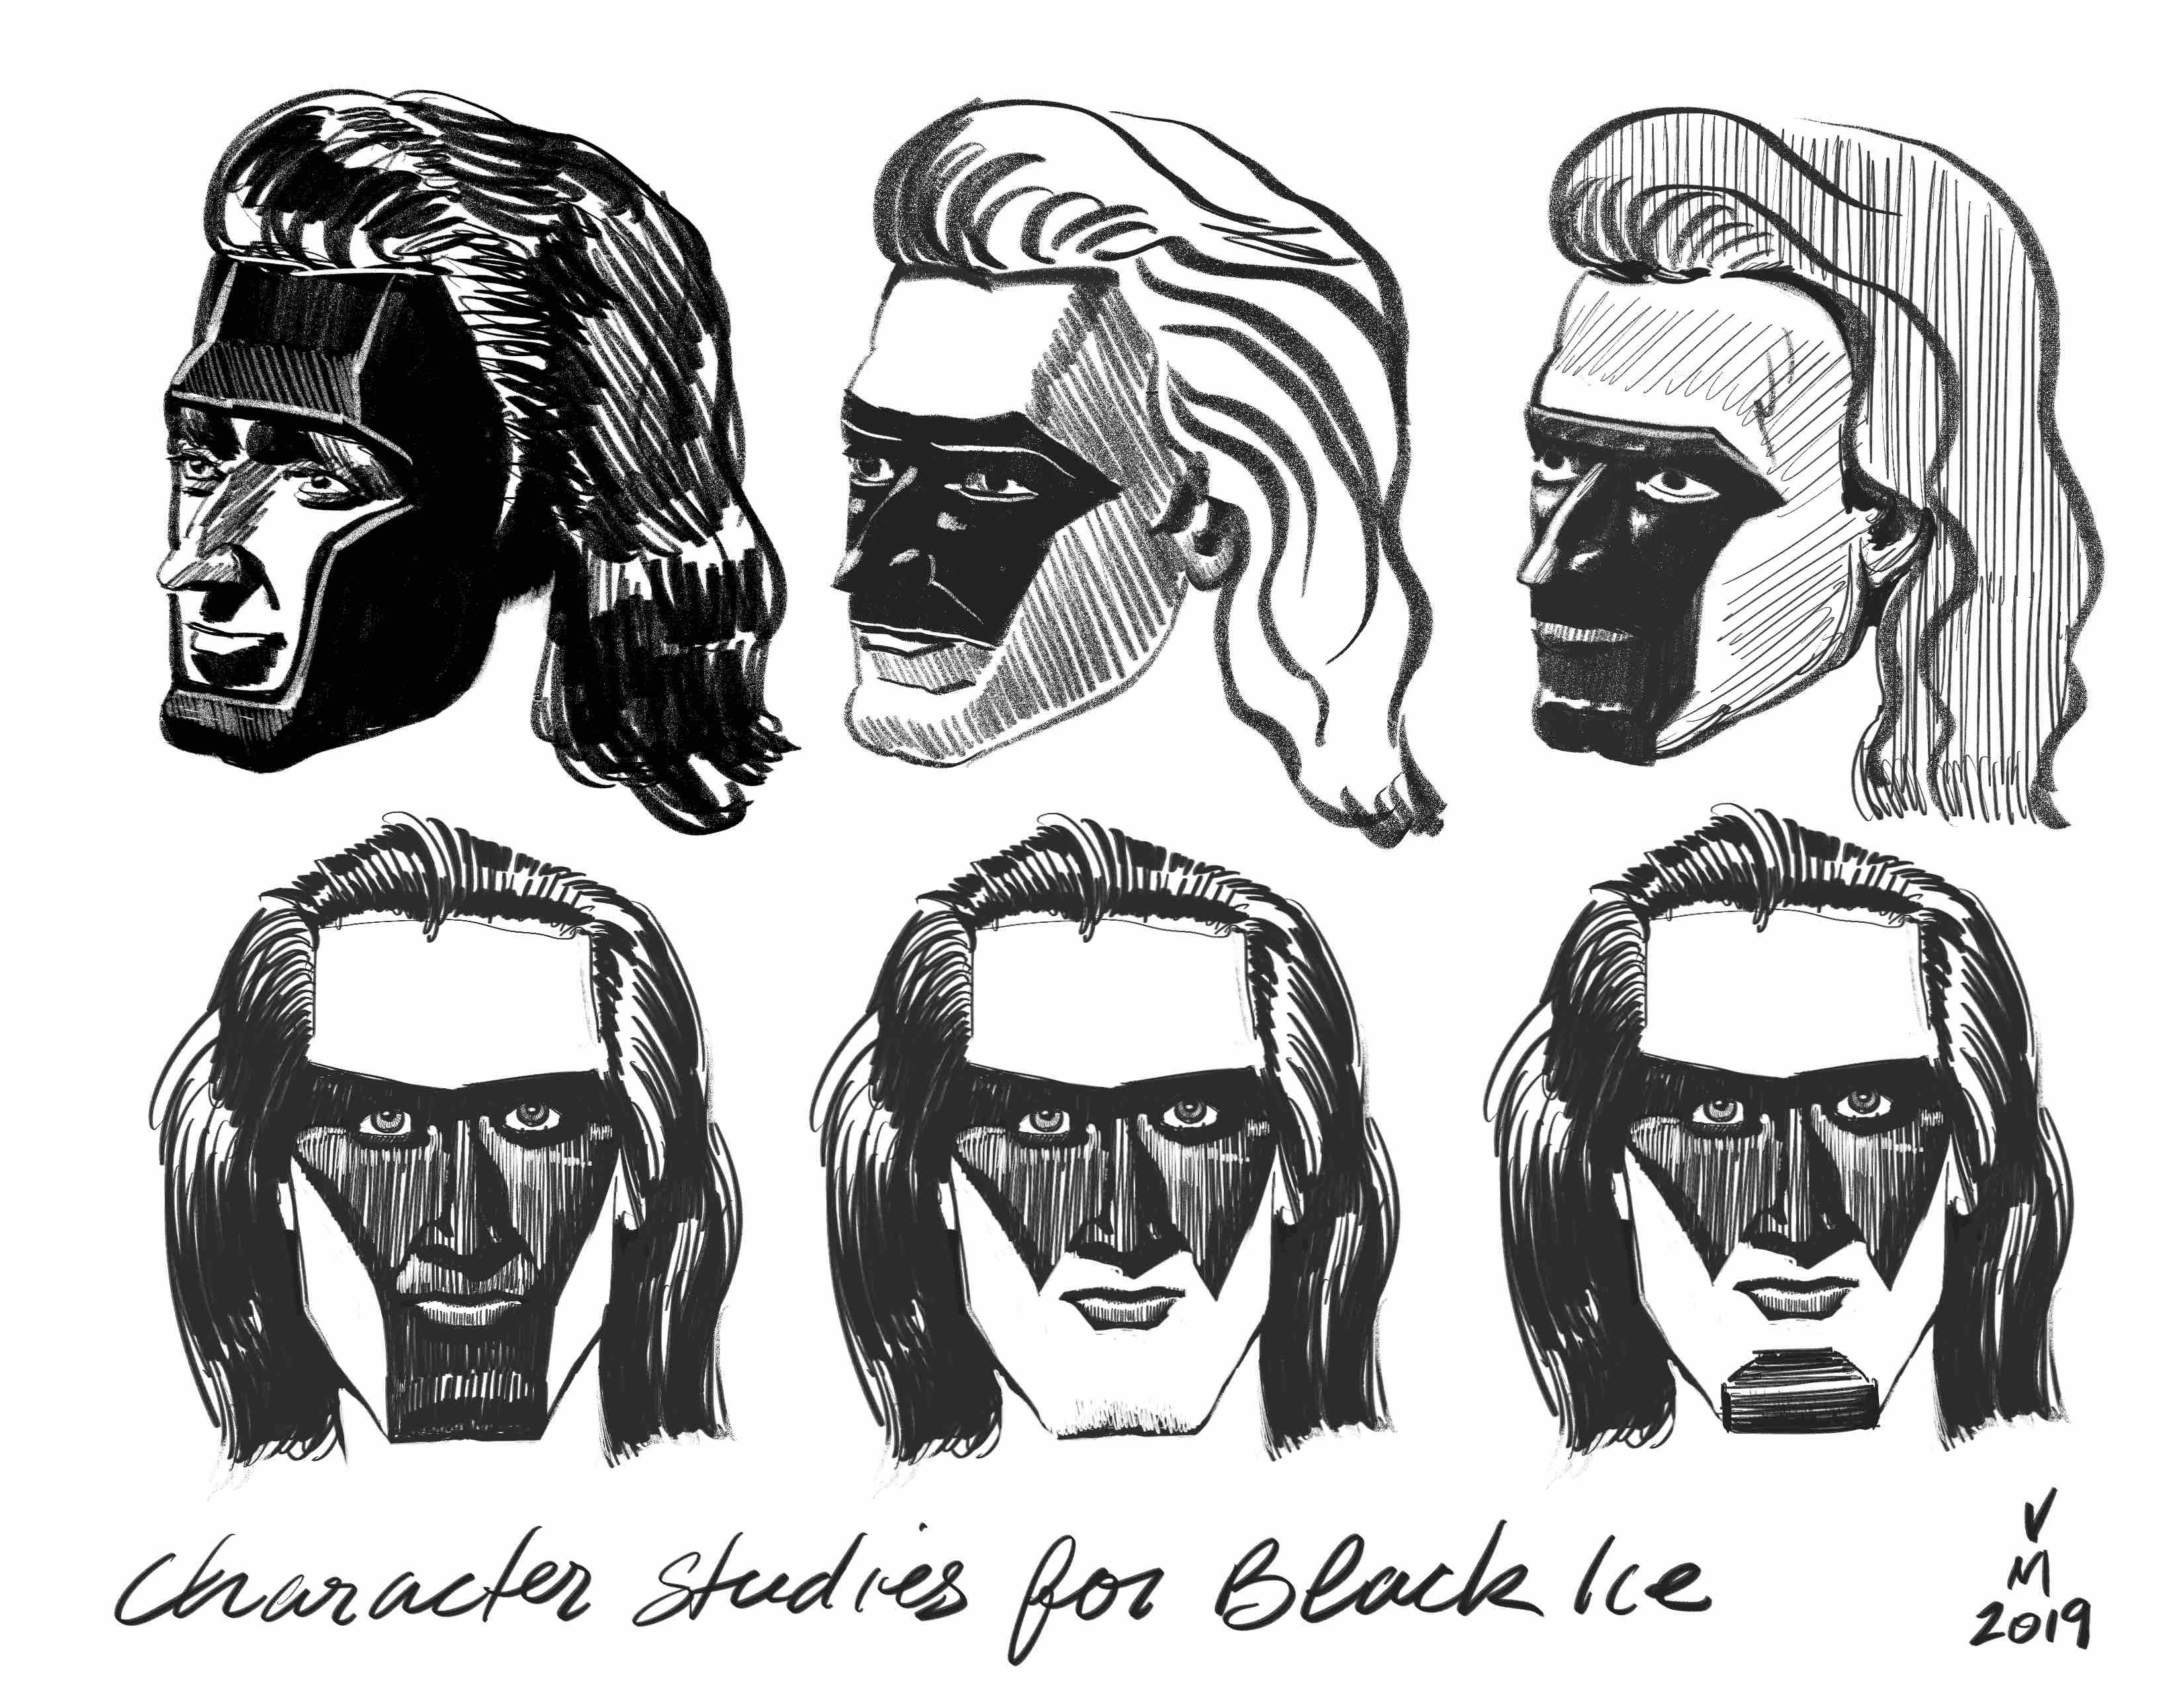 Character studies for black ice.